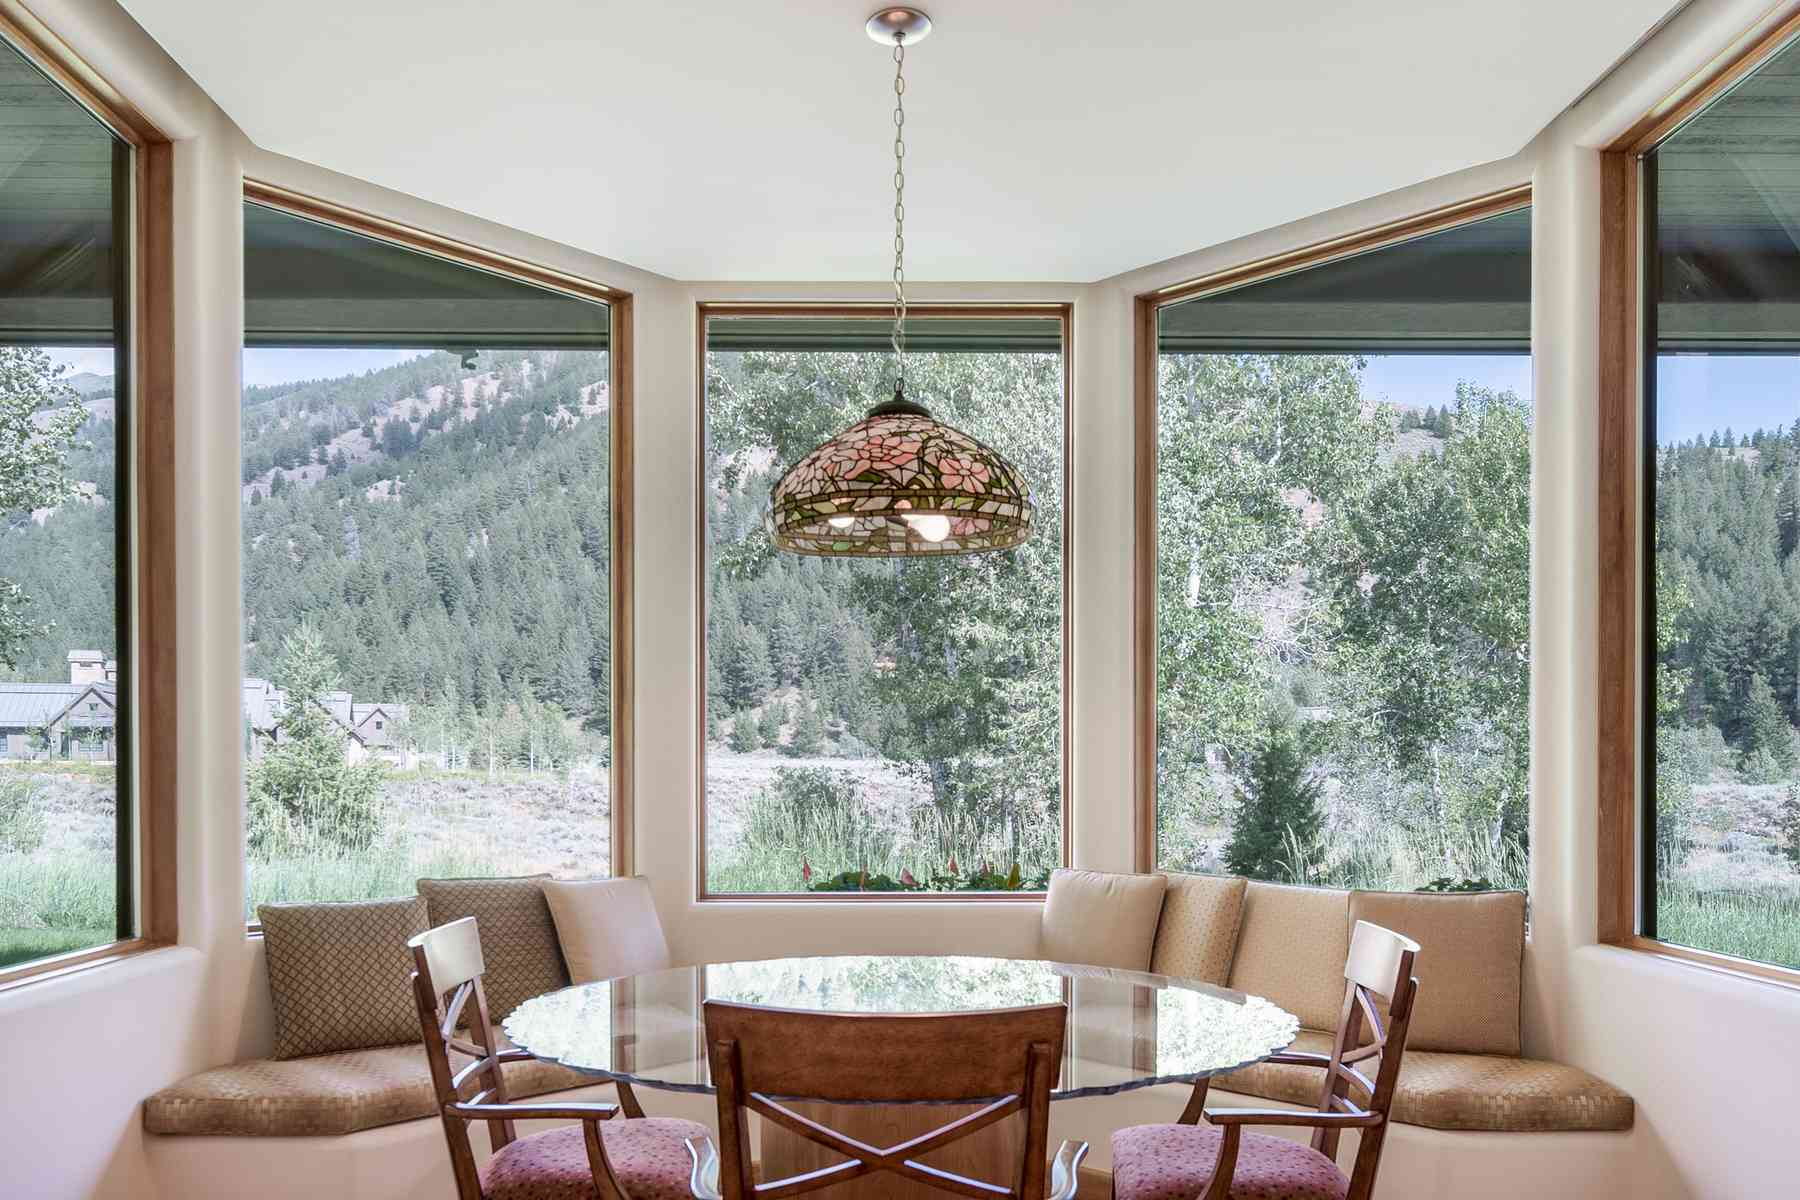 Additional photo for property listing at One of a kind Contemporary Home 205 Canyon Road Sun Valley, Idaho 83353 United States